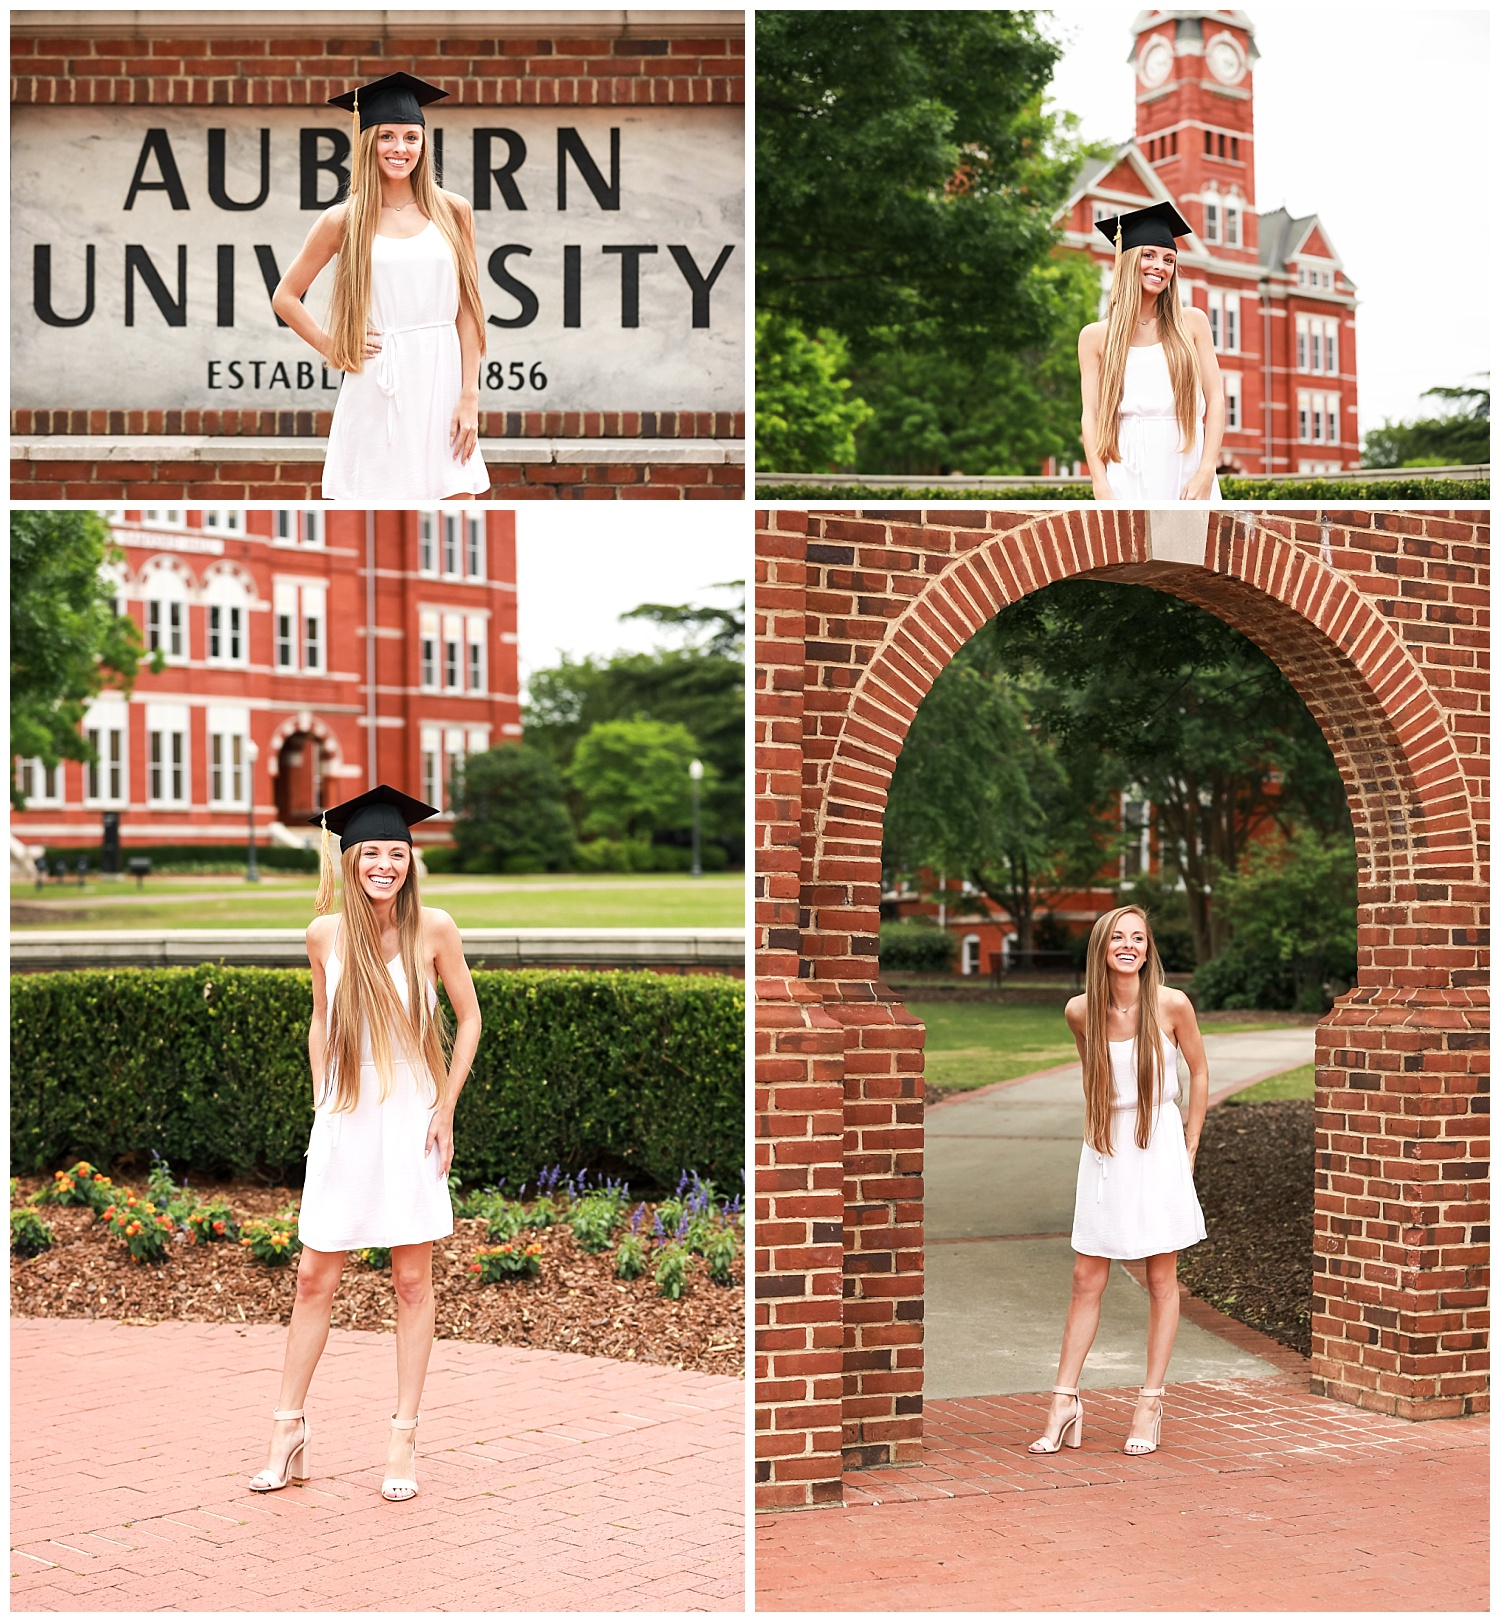 auburn university graduation photos lbeesleyphoto